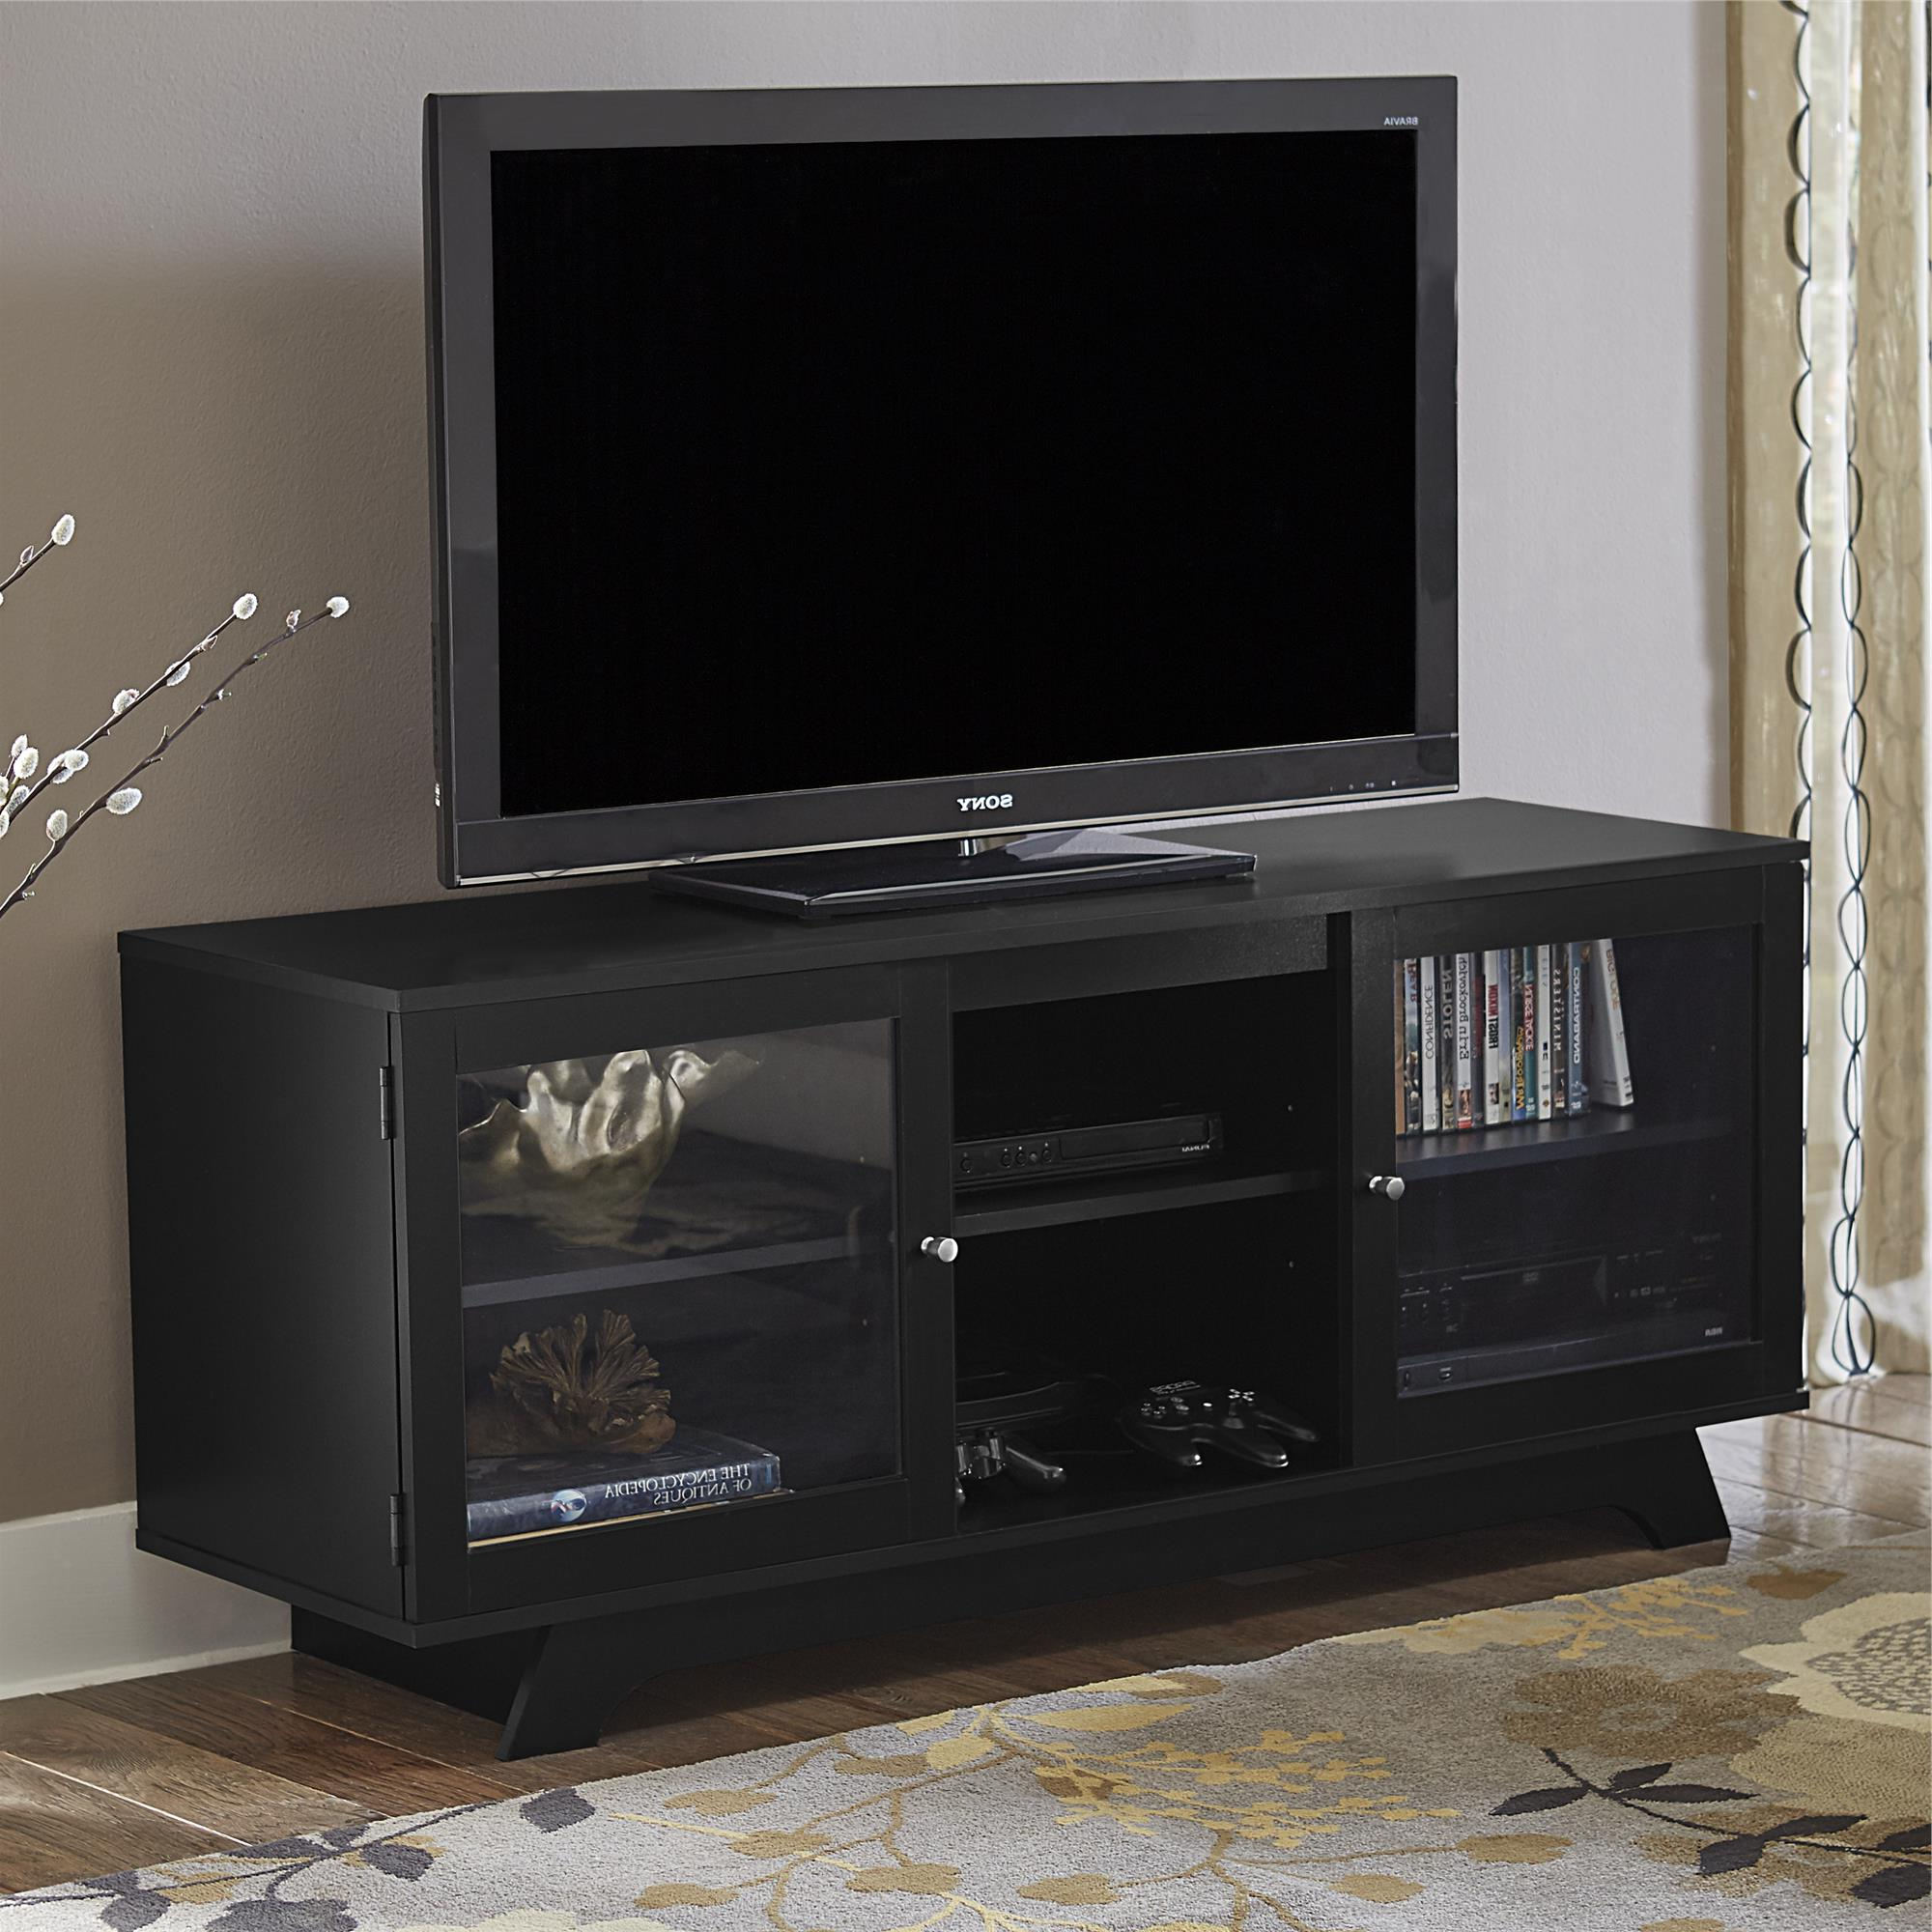 "Ameriwood Home Englewood Tv Stand For Tvs Up To 55"", Espresso For 2018 Long Black Tv Stands (View 13 of 20)"